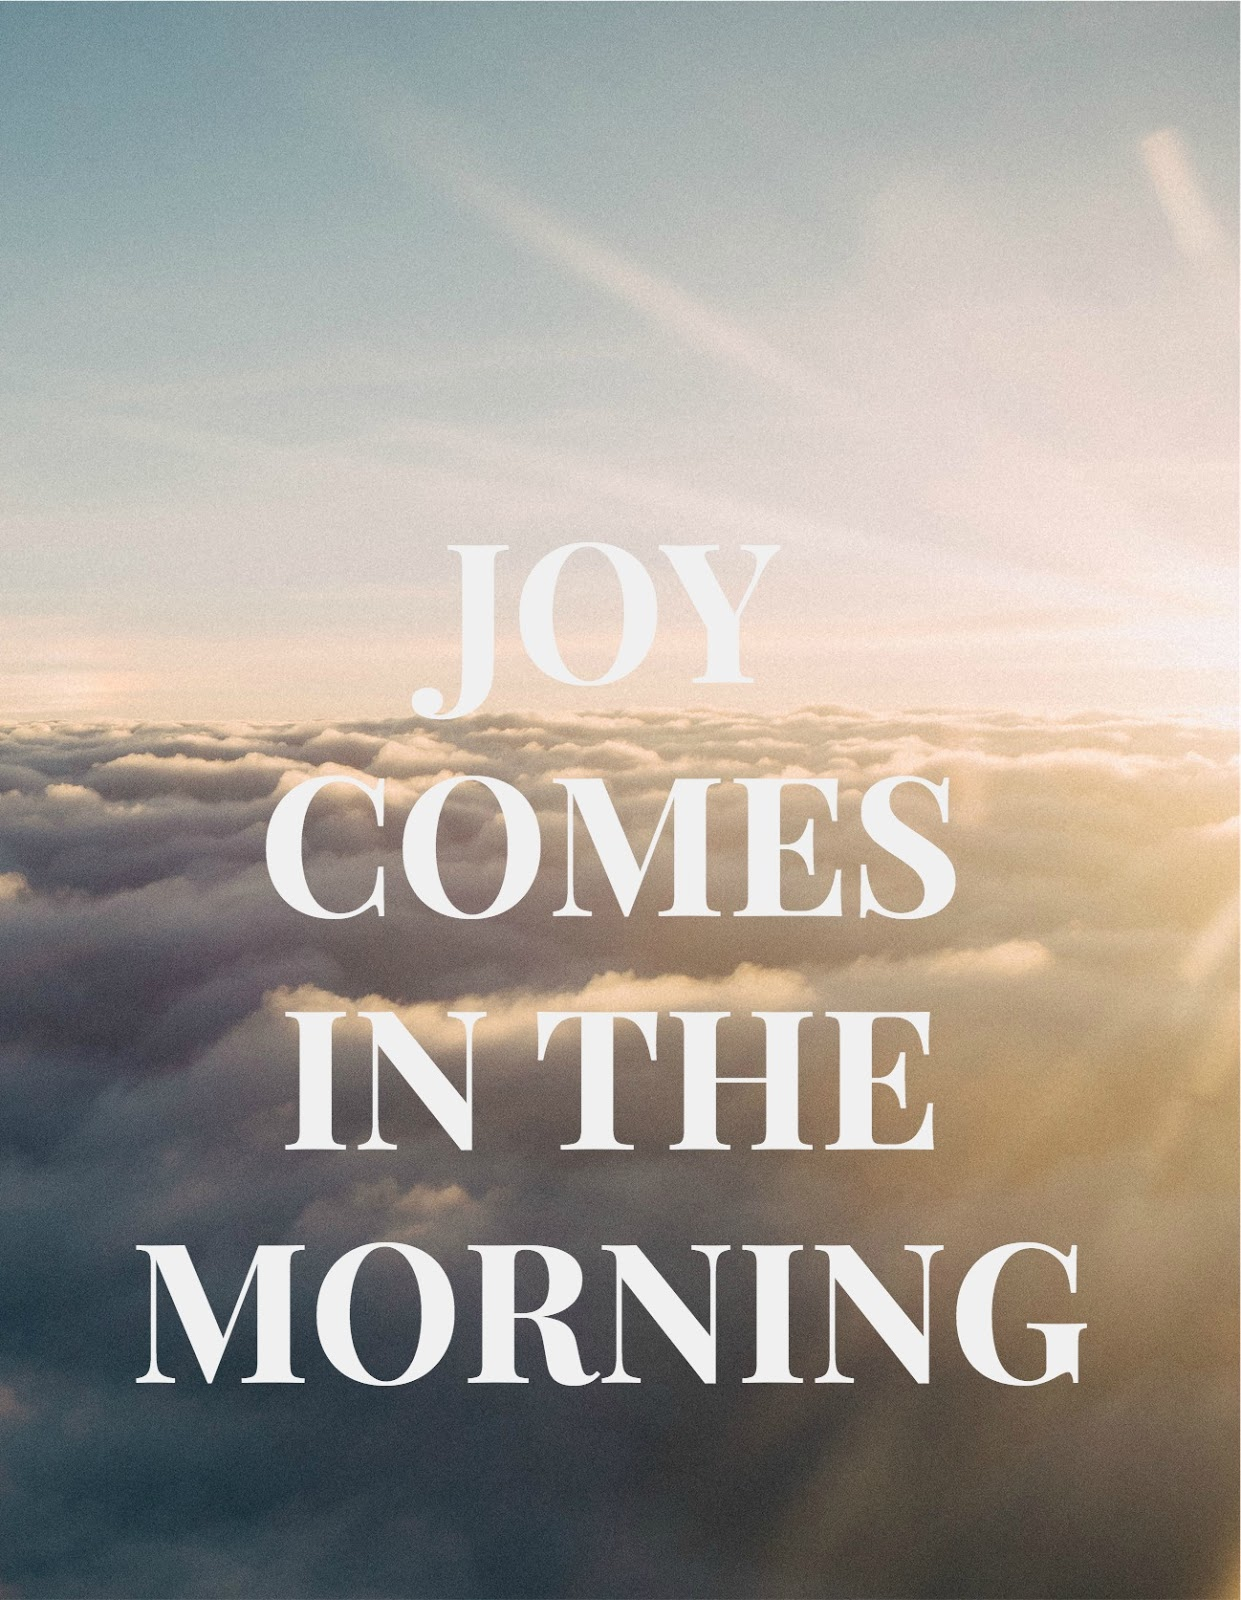 Joy Comes In The Morning Quotes